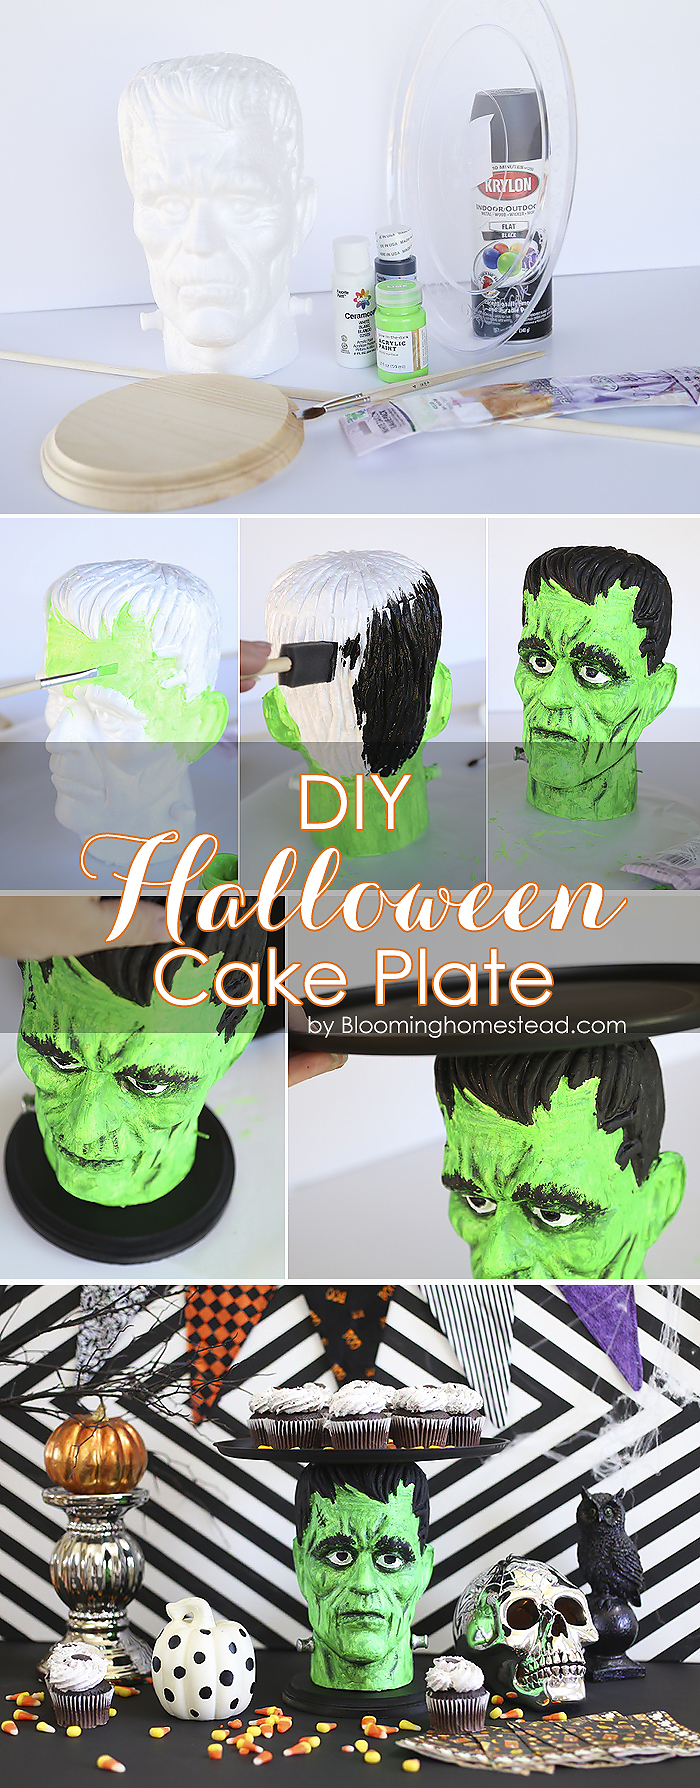 This fun Halloween Cake Plate or platter was made using foam heads available at the craft store! Super easy and fun way to serve goodies at a Halloween party or event.